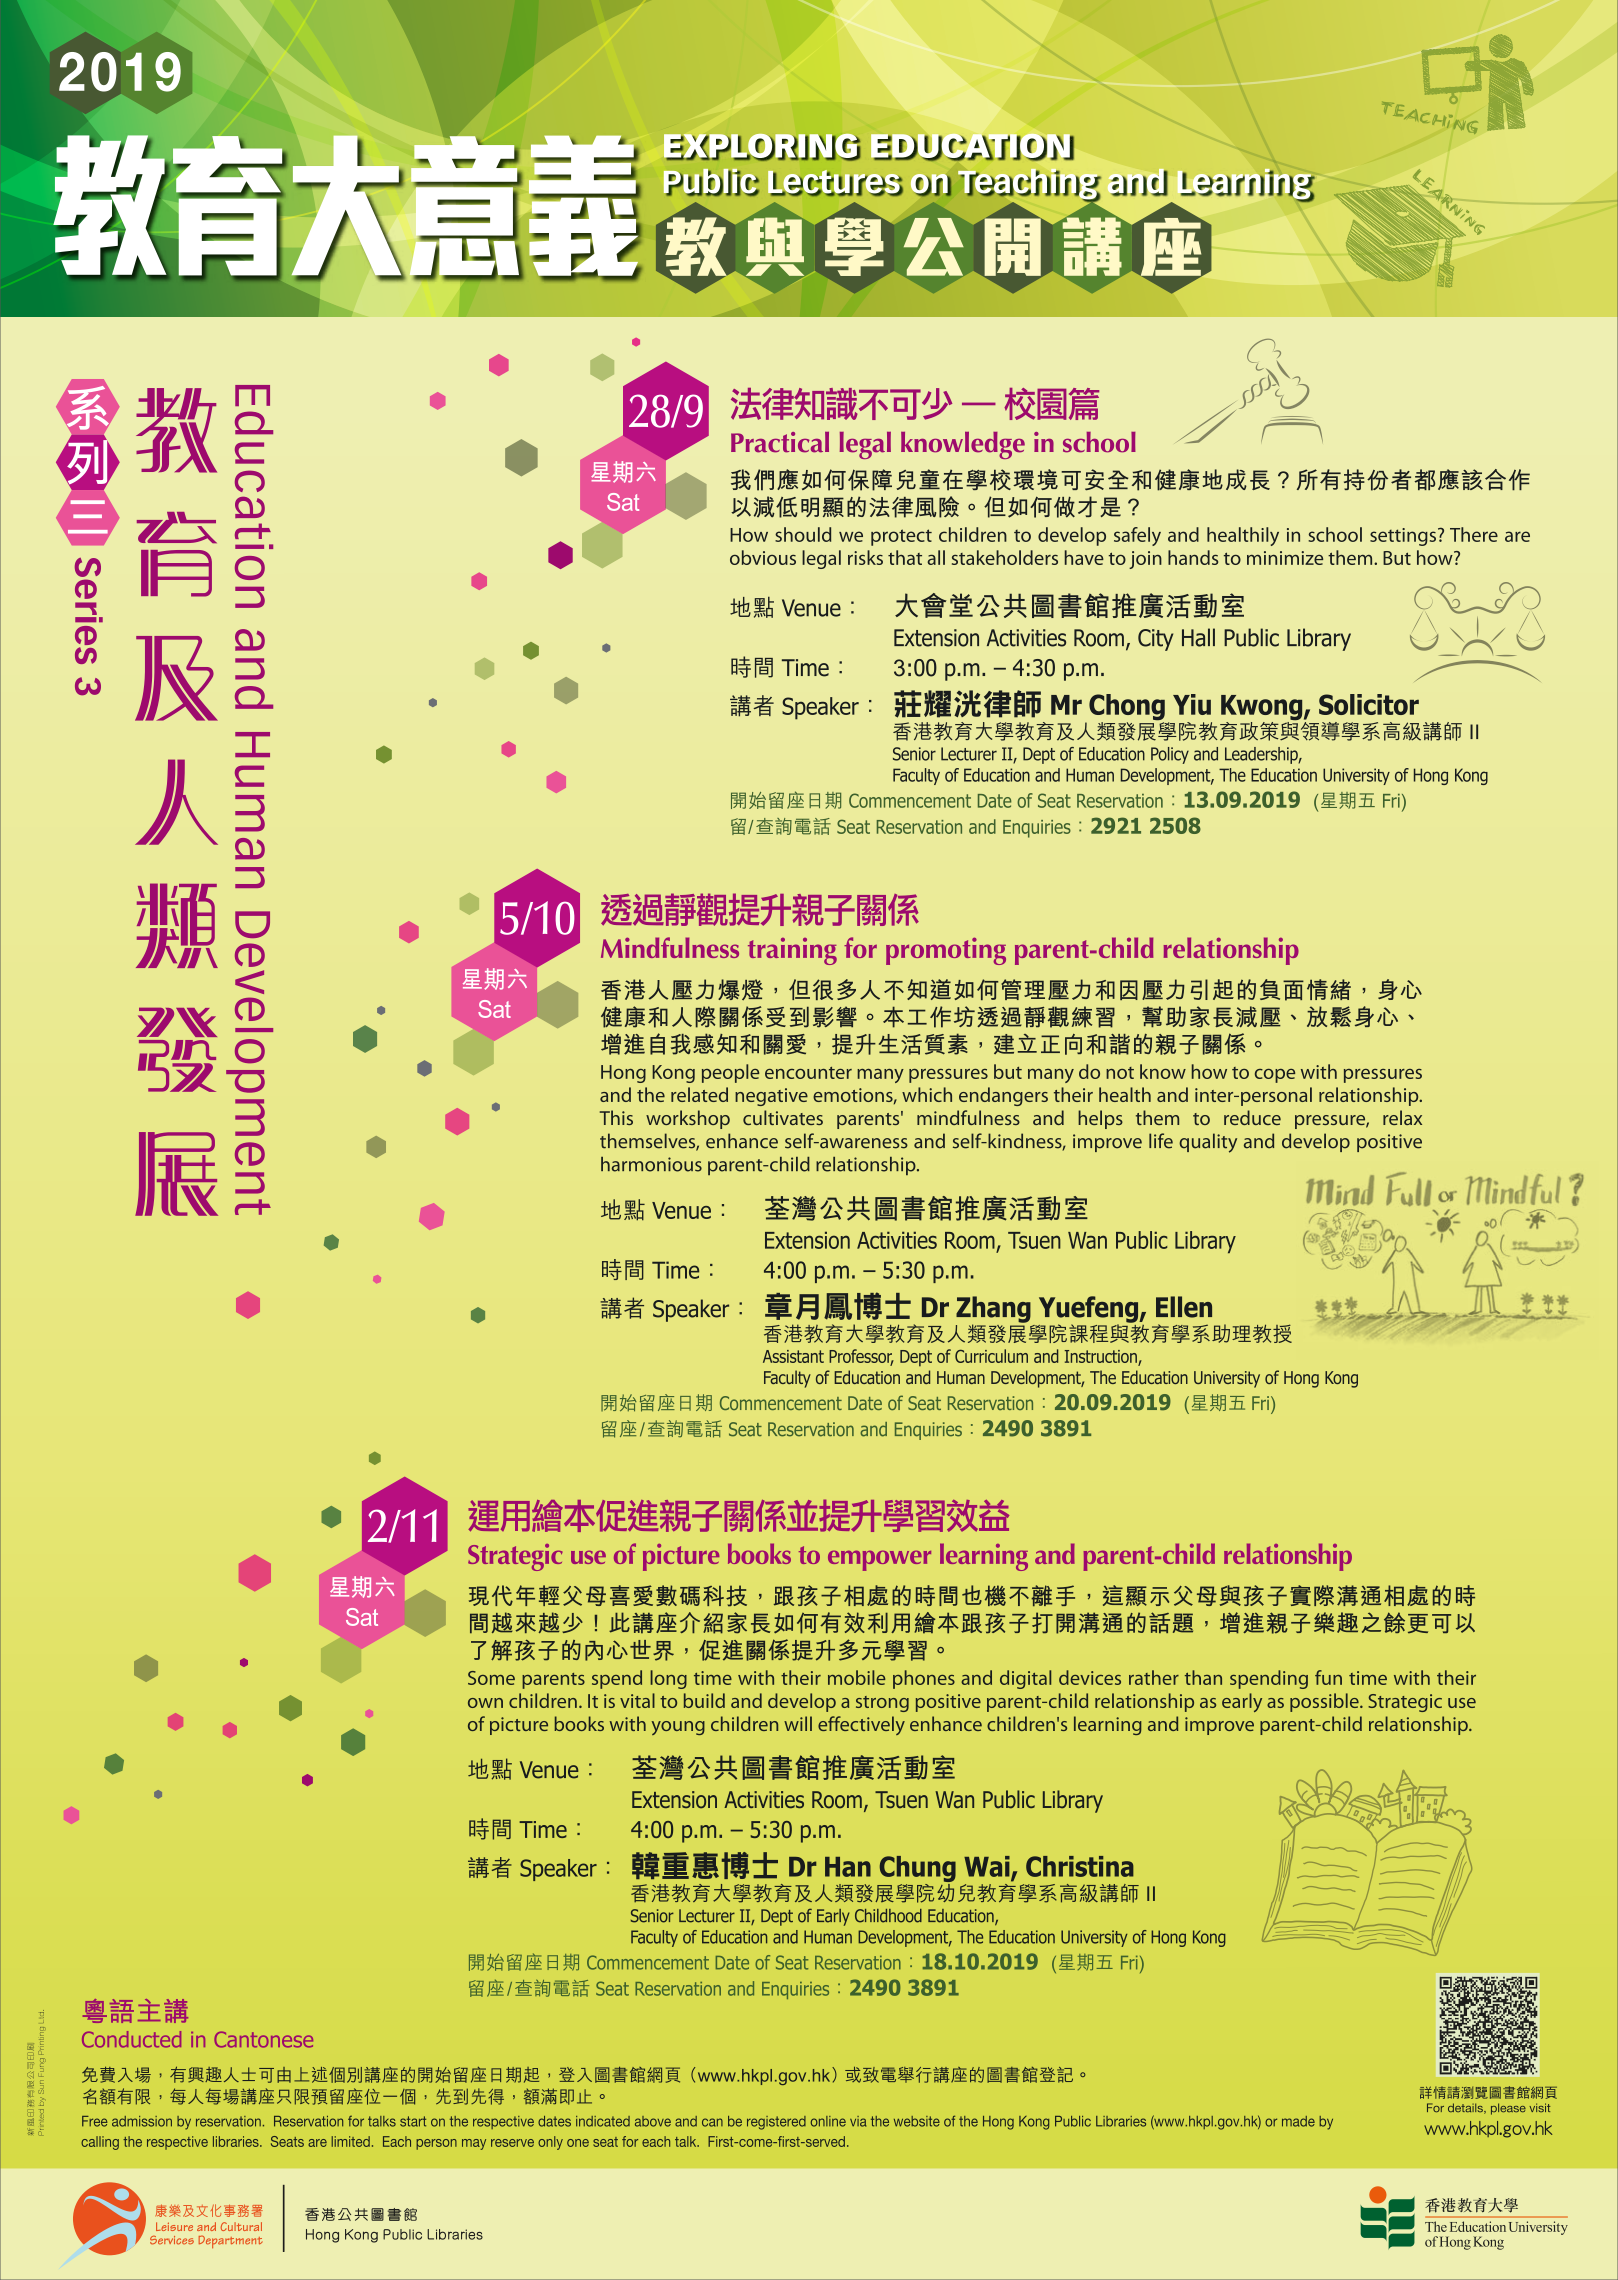 Event Calendar - The Education University of Hong Kong (EdUHK)